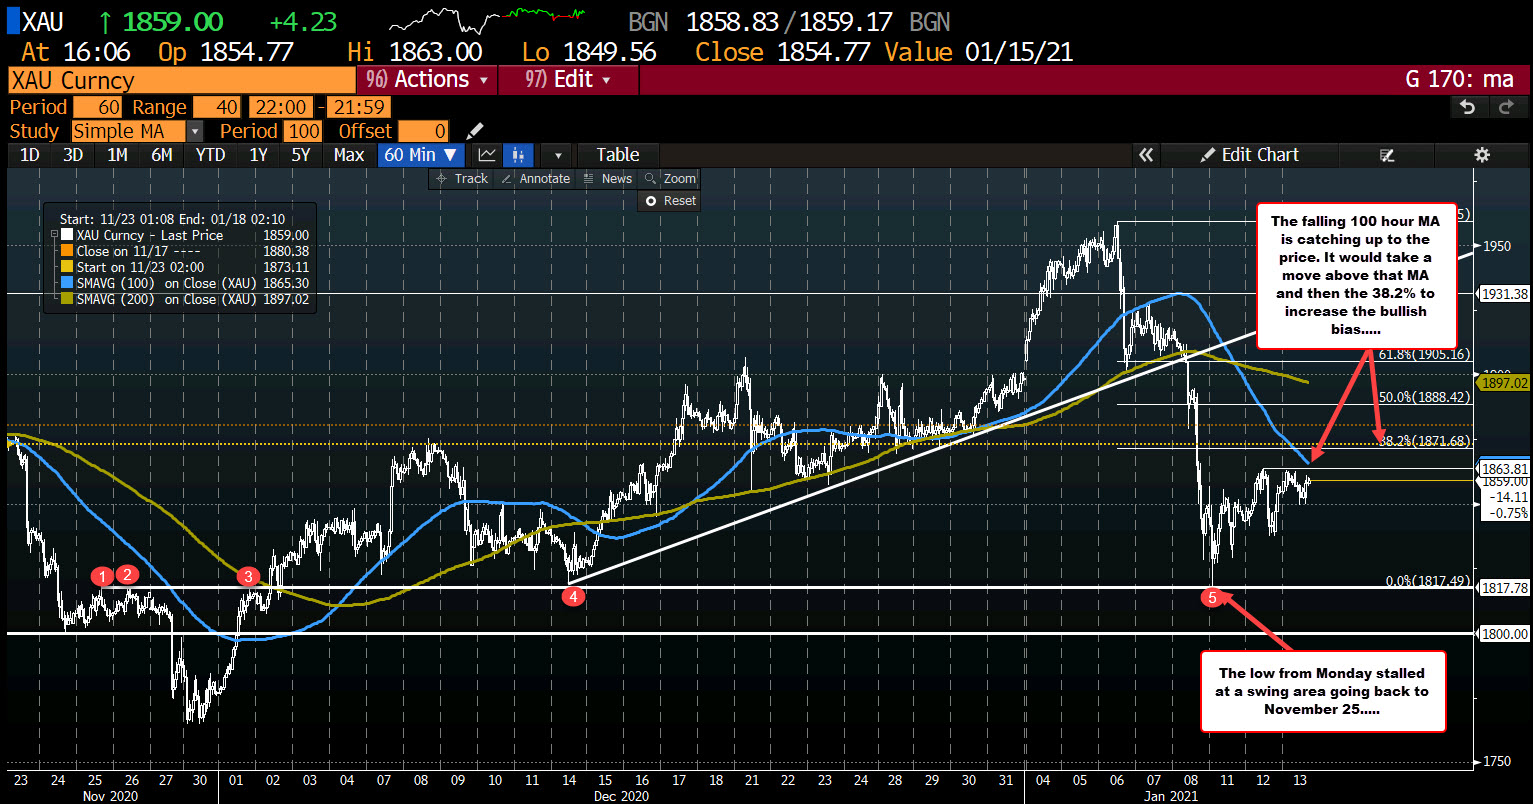 Gold consolidates and allows the 100 hour MA to catch up to the price